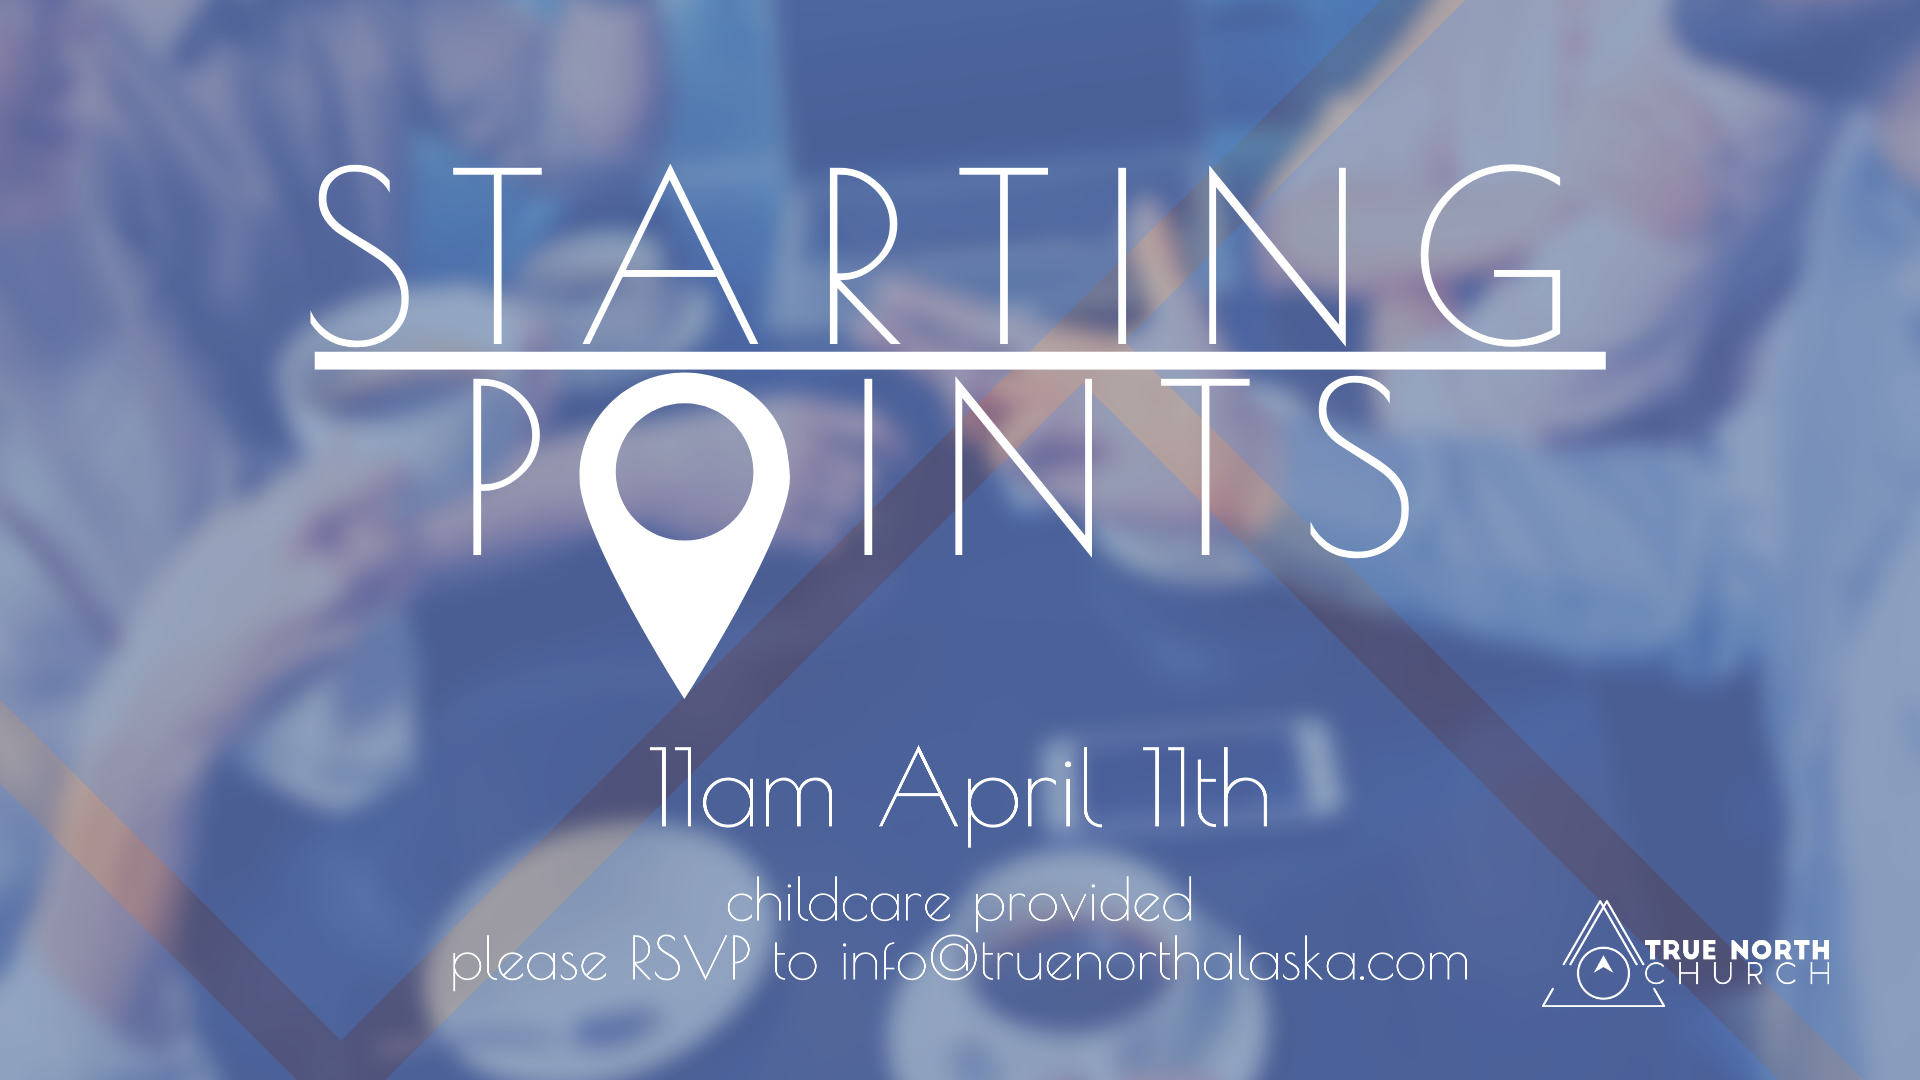 Starting Points Announcement April 11th image